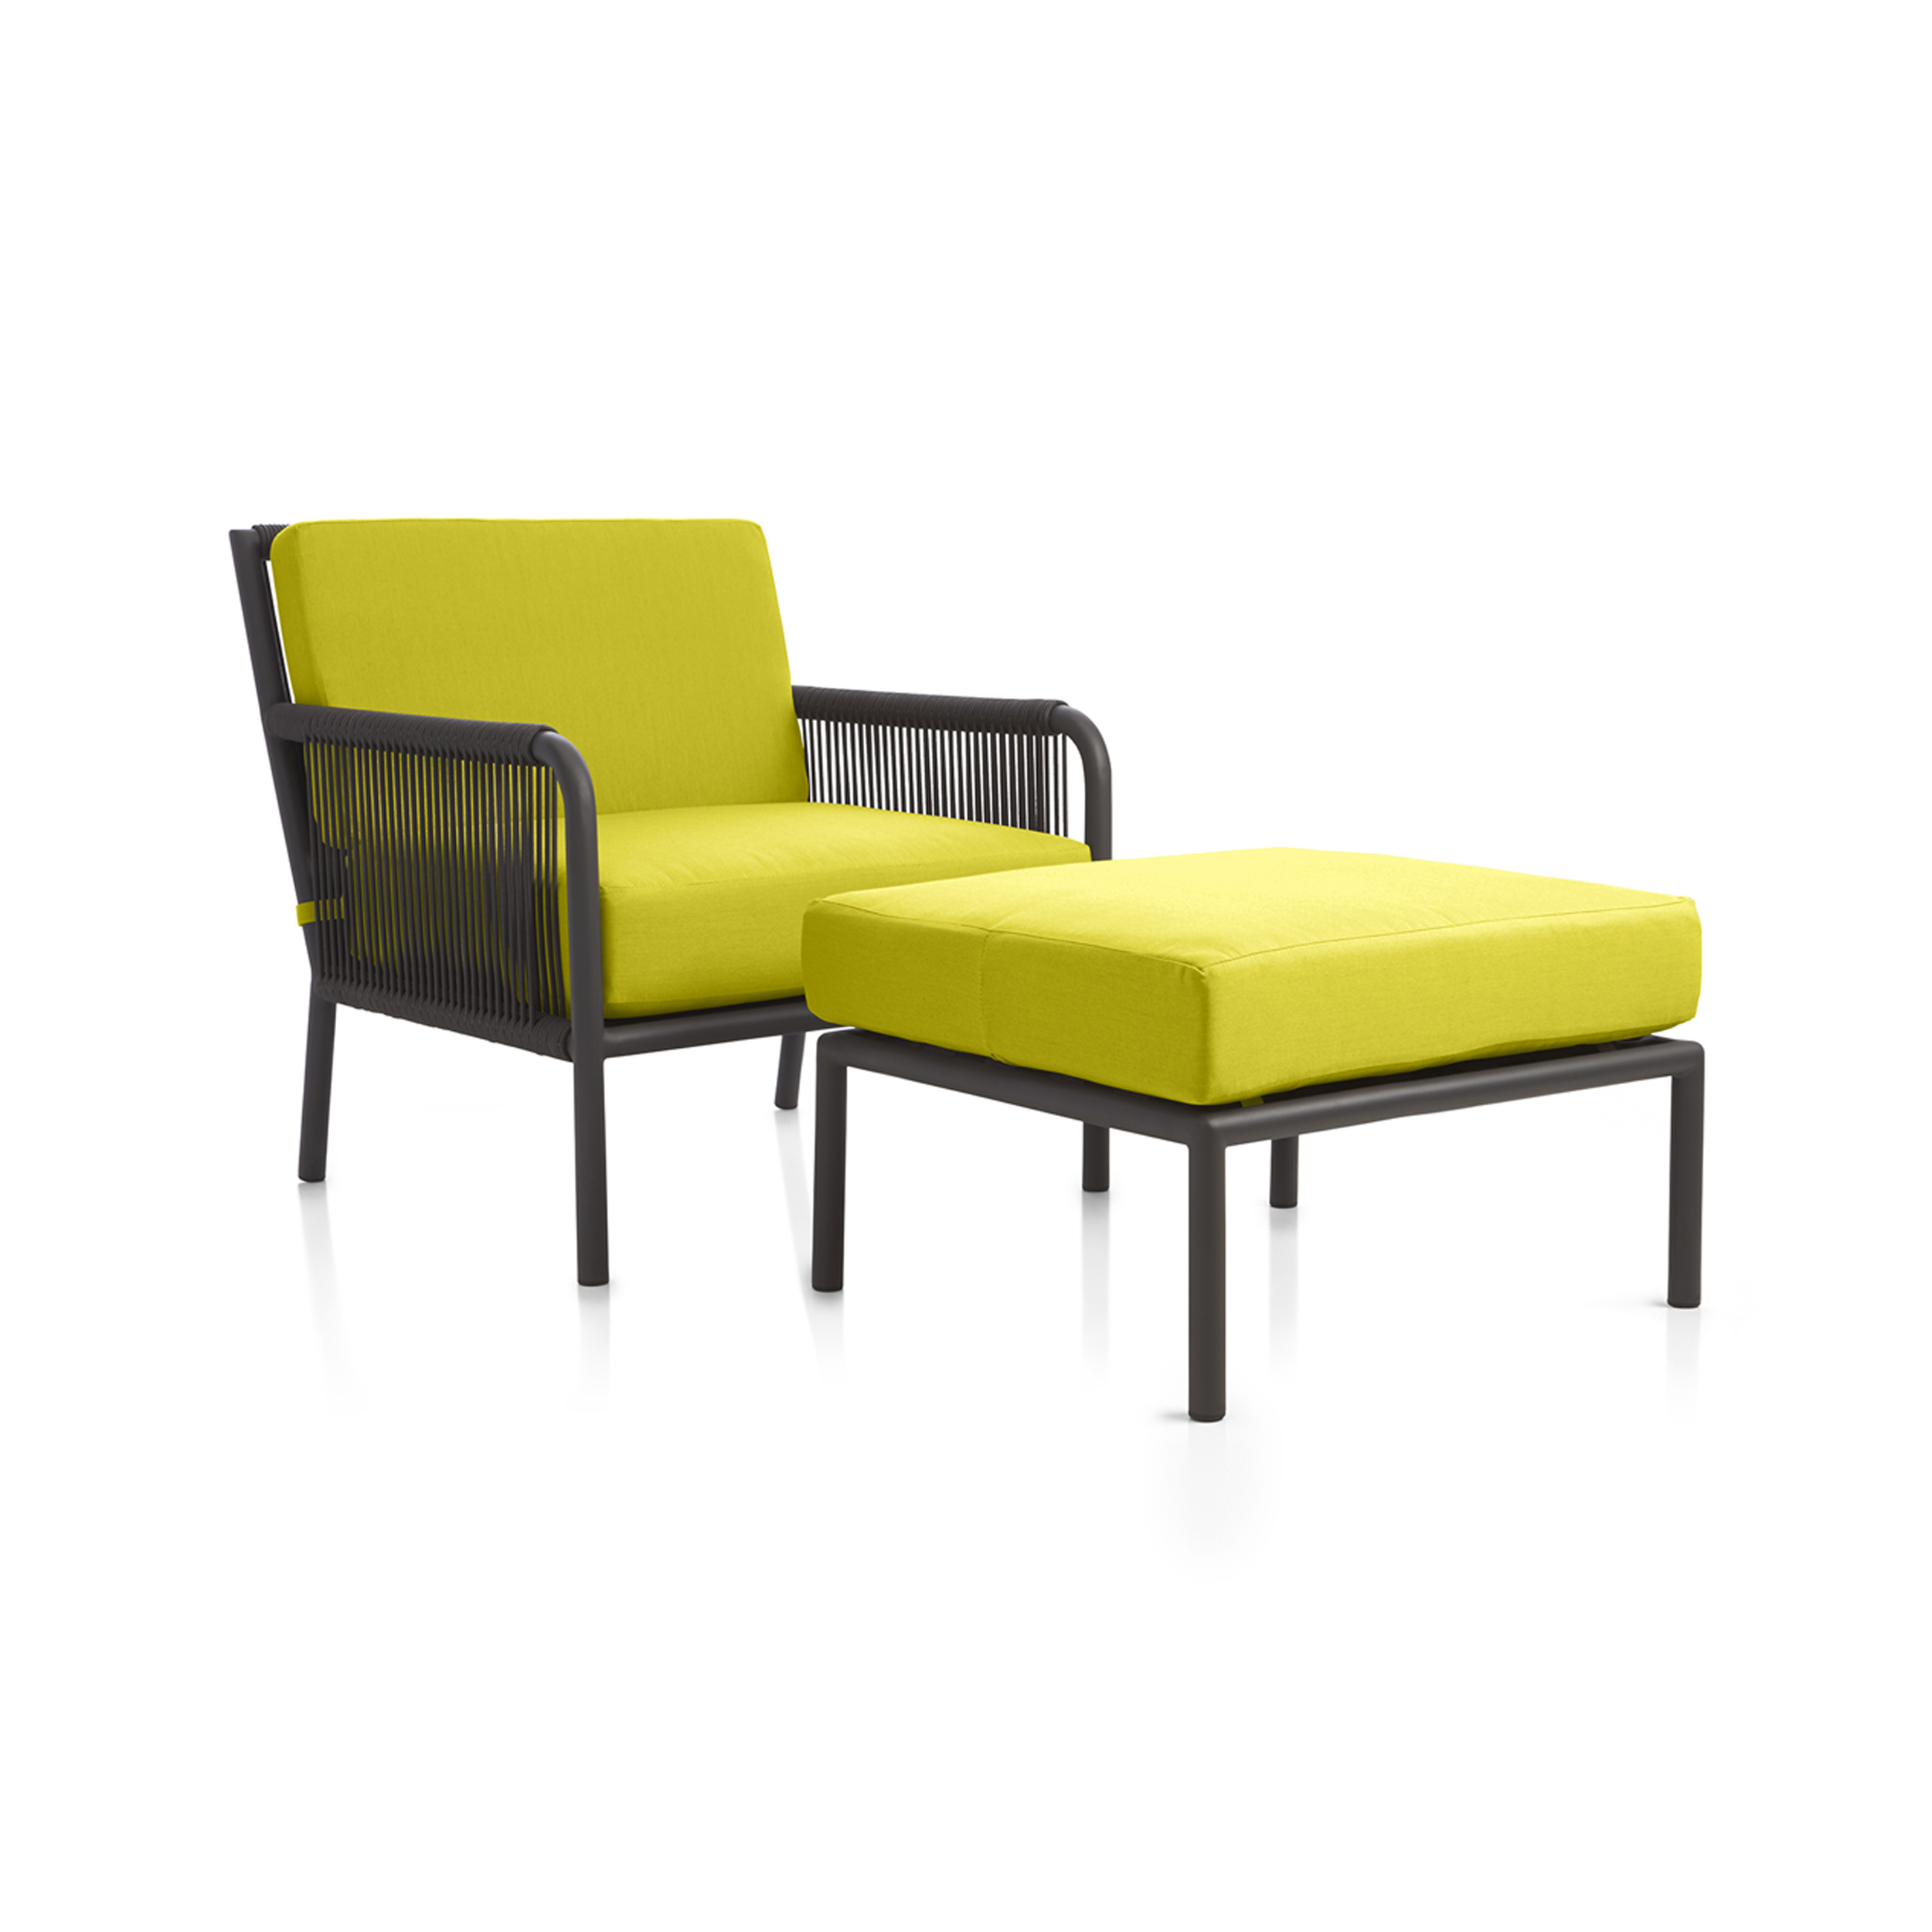 Crate & Barrel's Morocco Lounge Chair